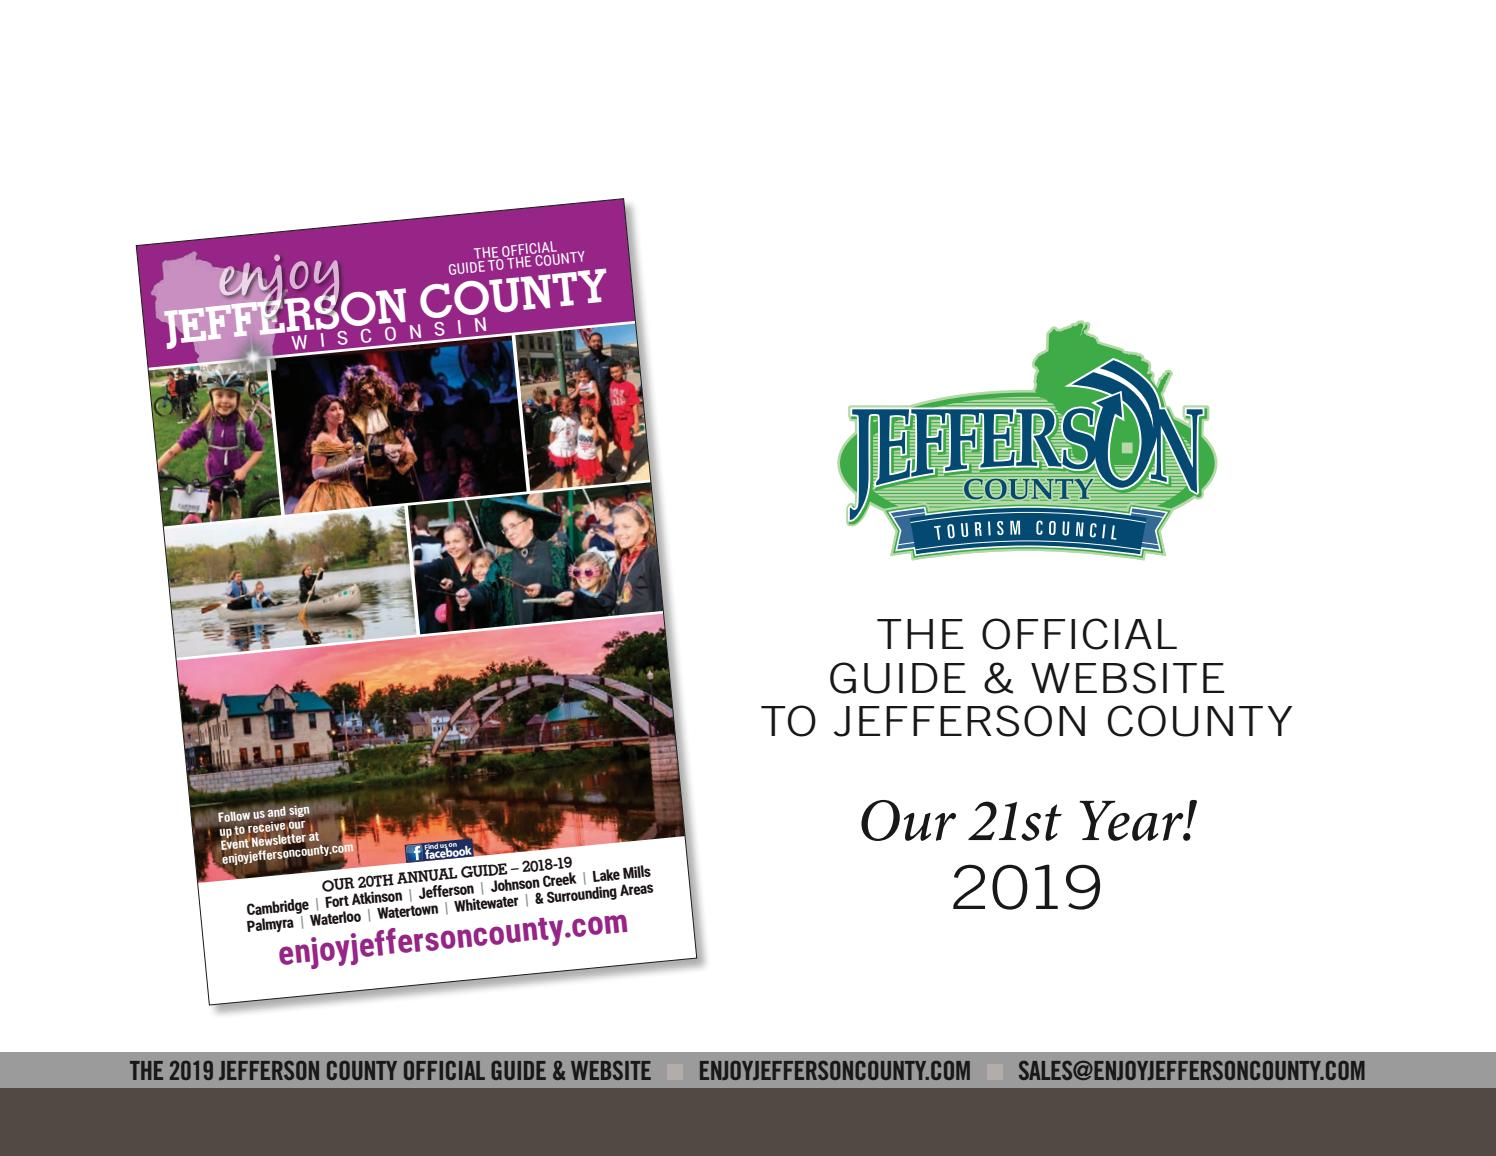 2018-19 Jefferson County Official Guide & Website Media Kit